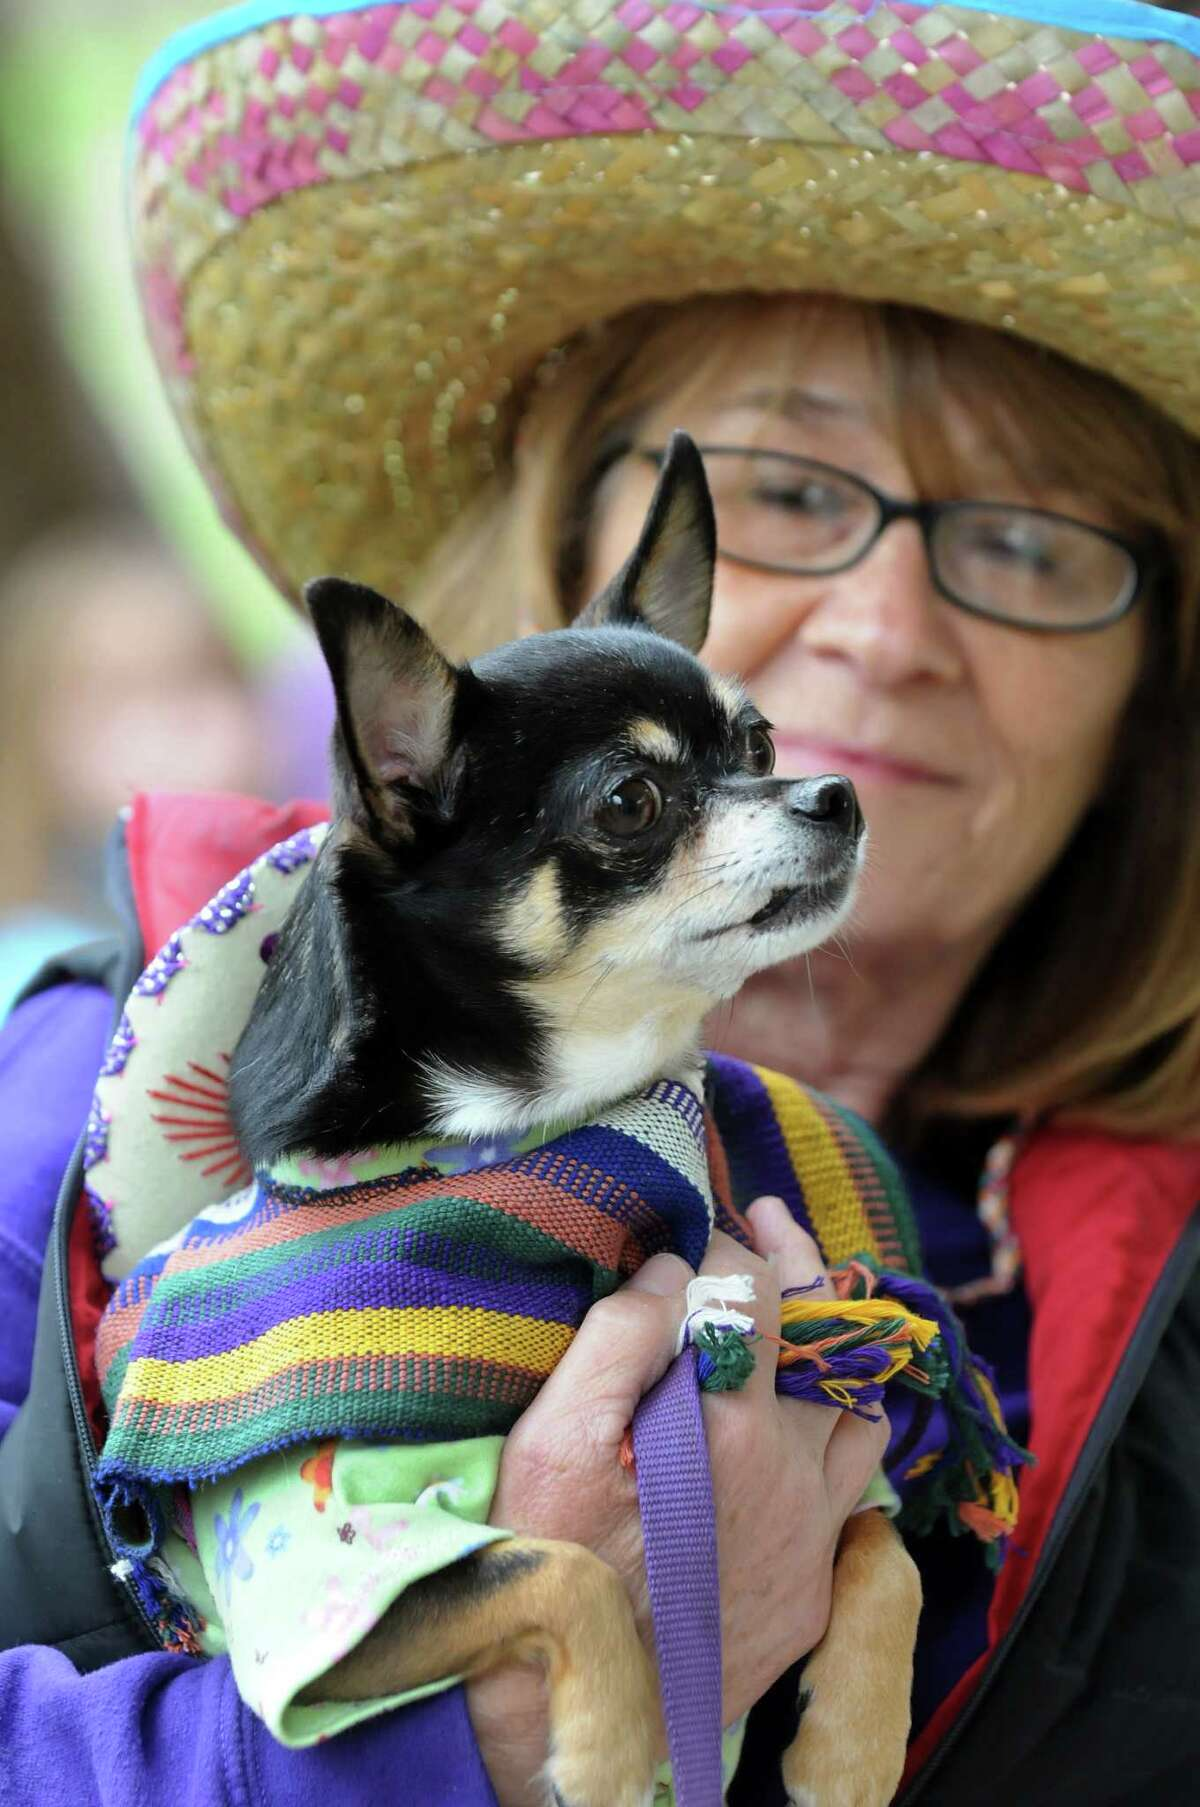 Stephanie Szegda of Ballston Spa holds Abby, a rescued Chihuahua owned by H.O.P.E. founder Wendy Mongillo, during H.O.P.E.'s Annual Walk For The Animals on Saturday, April 26, 2014, in Saratoga Springs, N.Y. Funds from the walk benefit H.O.P.E., which stands for Homes for Orphaned Pets Exist, an animal rescue and low-cost spay and neuter clinic in Wilton. (Cindy Schultz / Times Union)